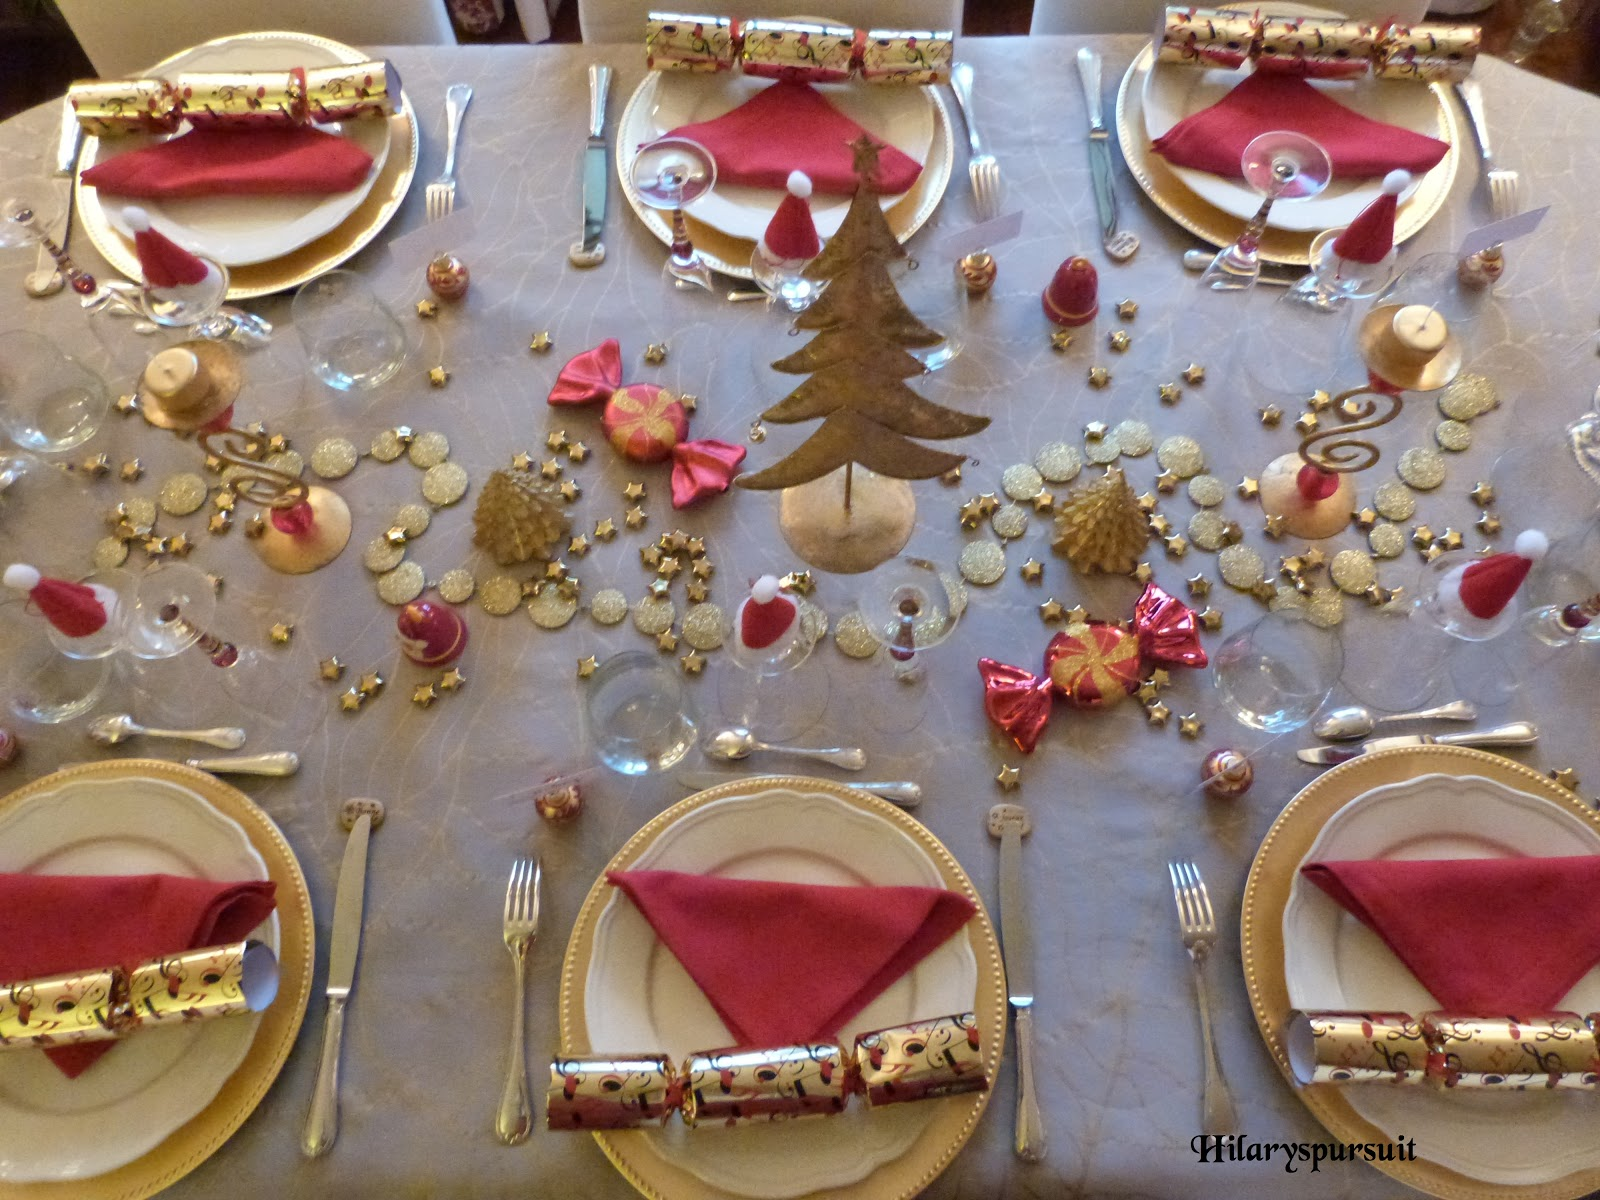 Dans la cuisine d 39 hilary sp cial f tes table de no l d for Presentation de table de noel